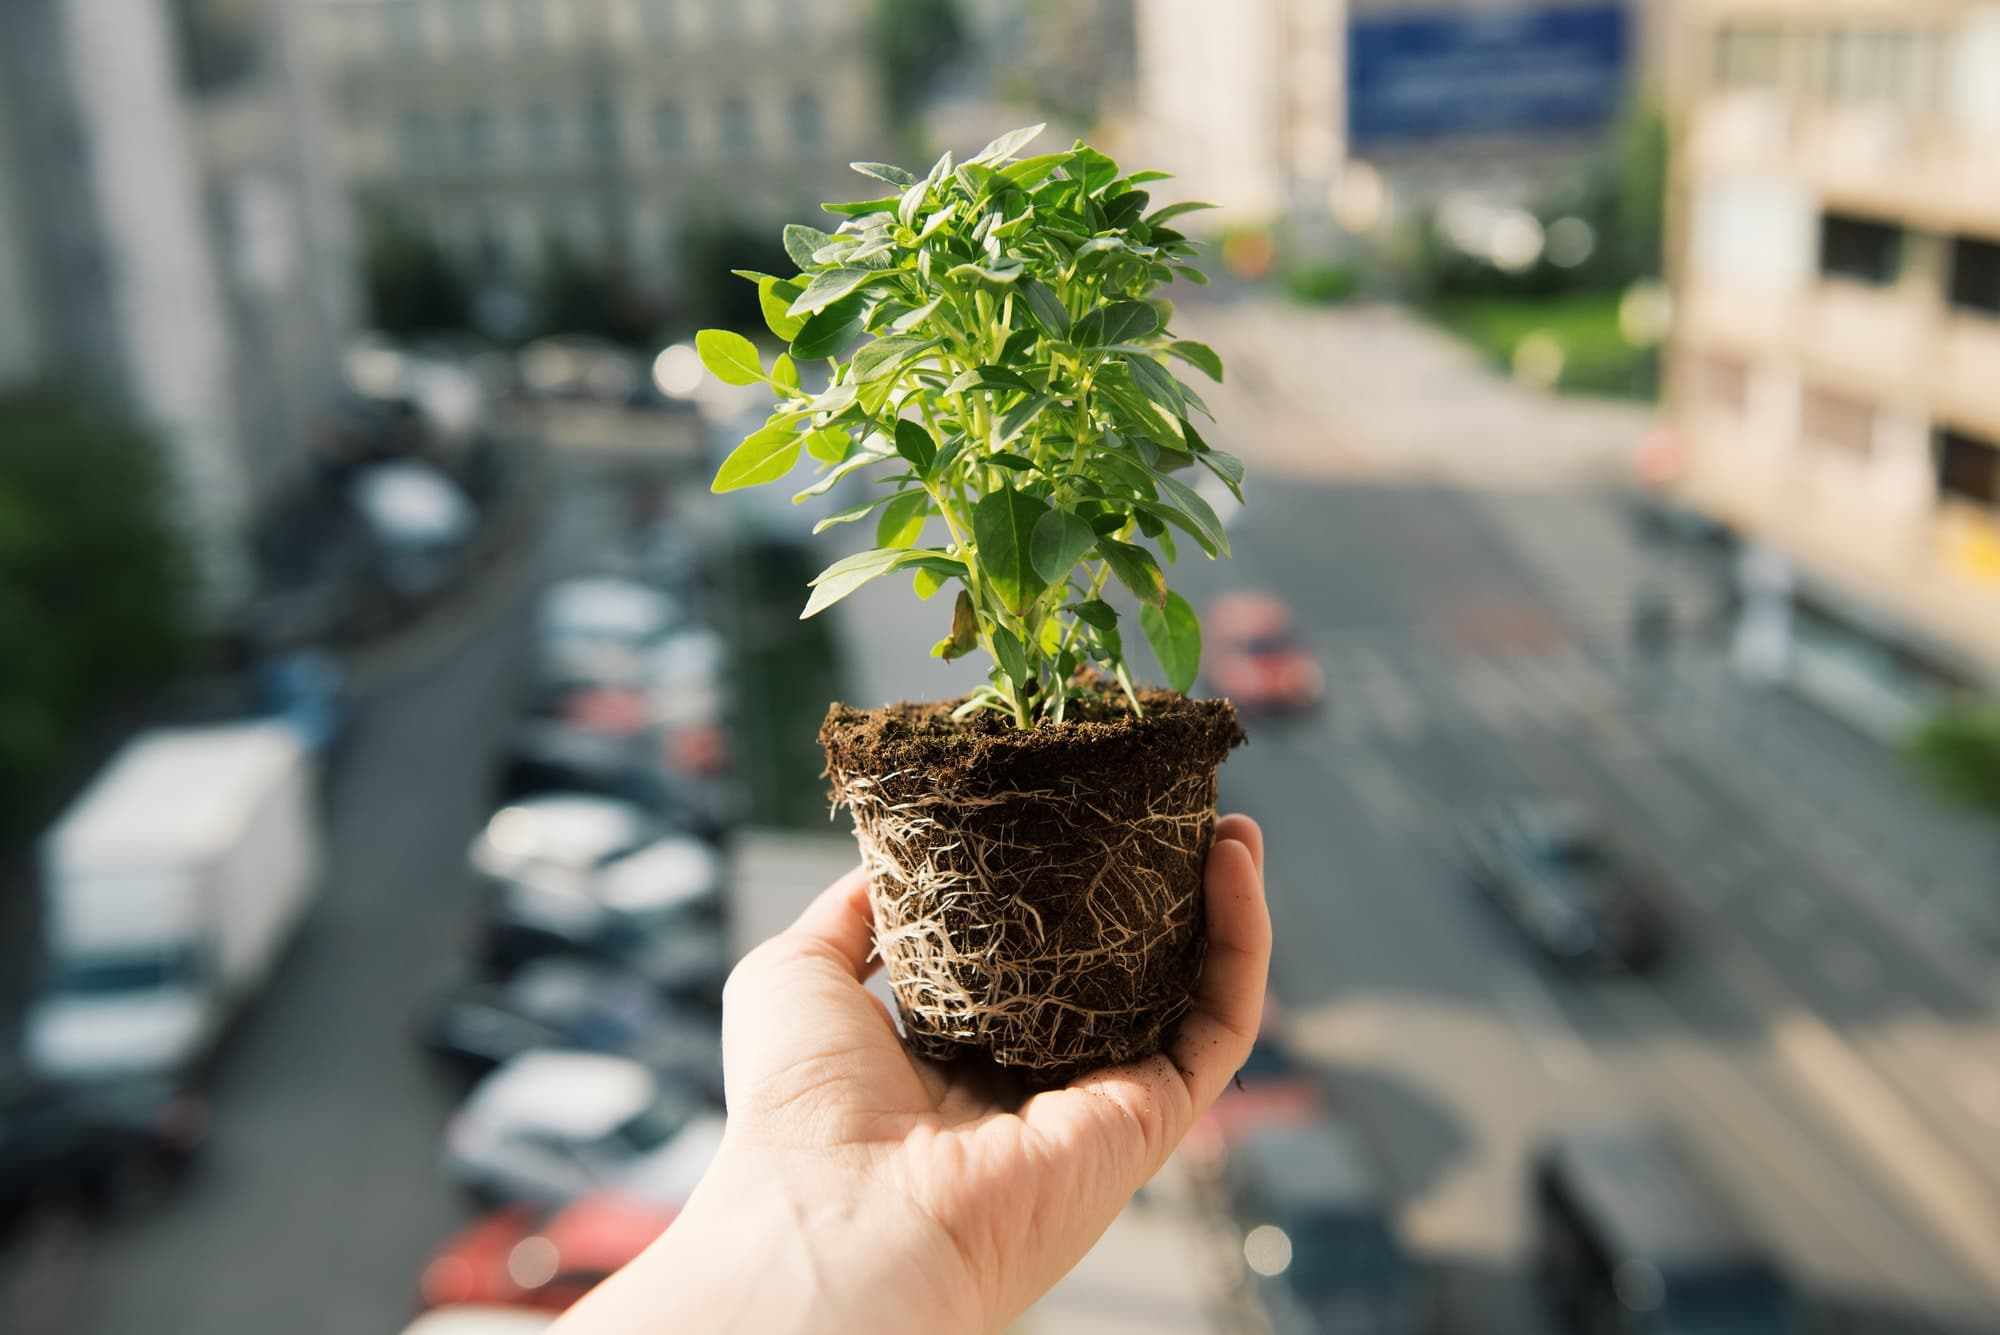 Hand holding green plant with roots and soil over a city background